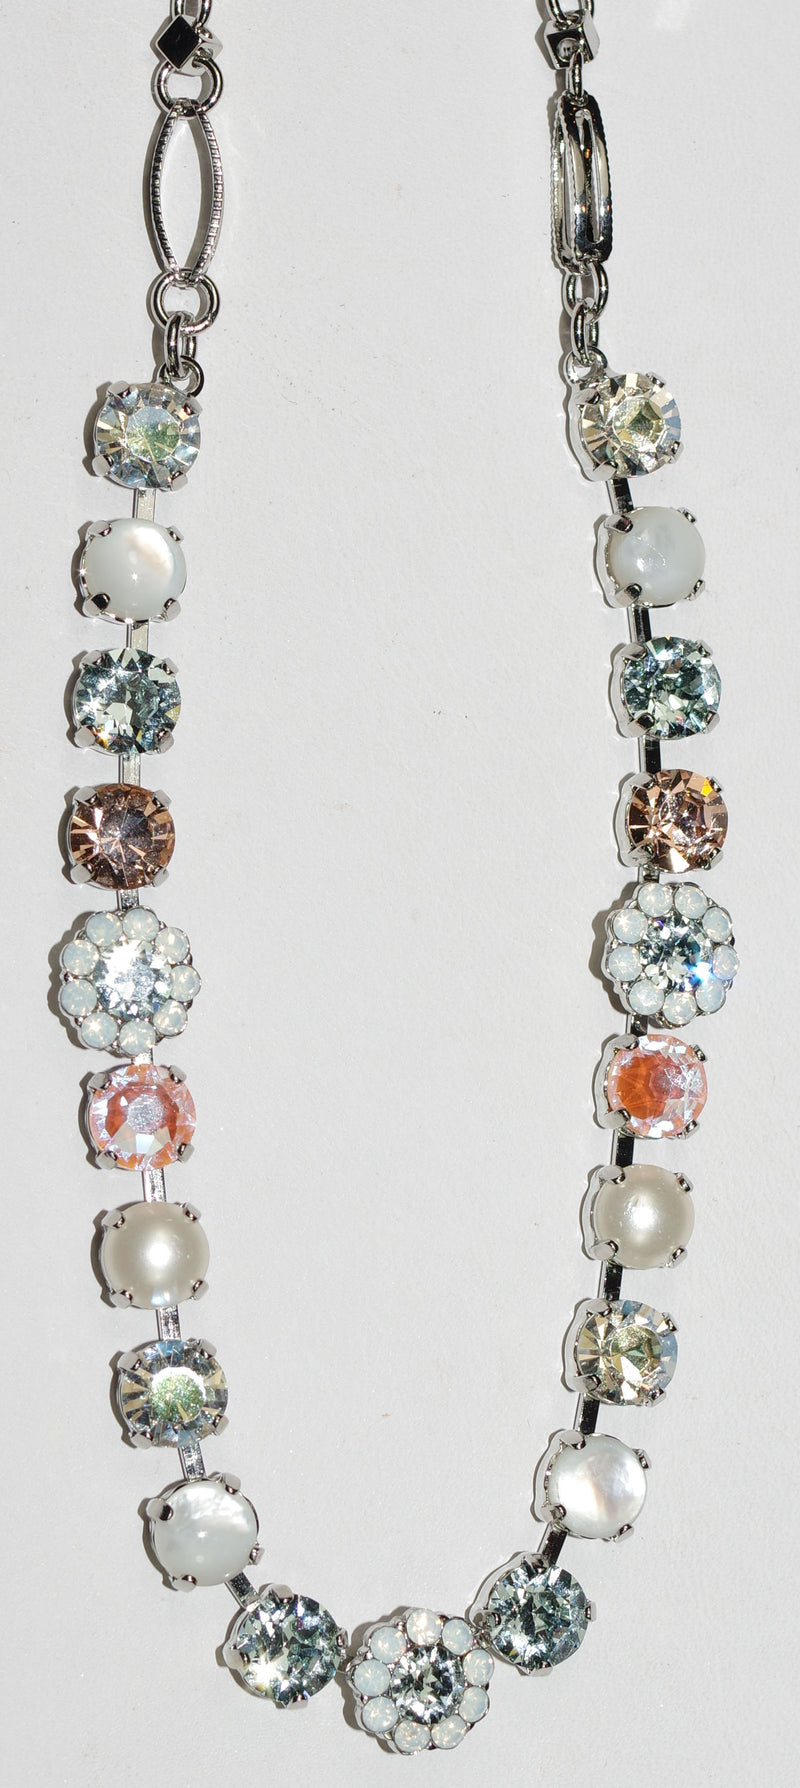 "MARIANA NECKLACE SWEET PEA: amber, blue, clear, white stones in rhodium setting, 18"" adjustable chain"